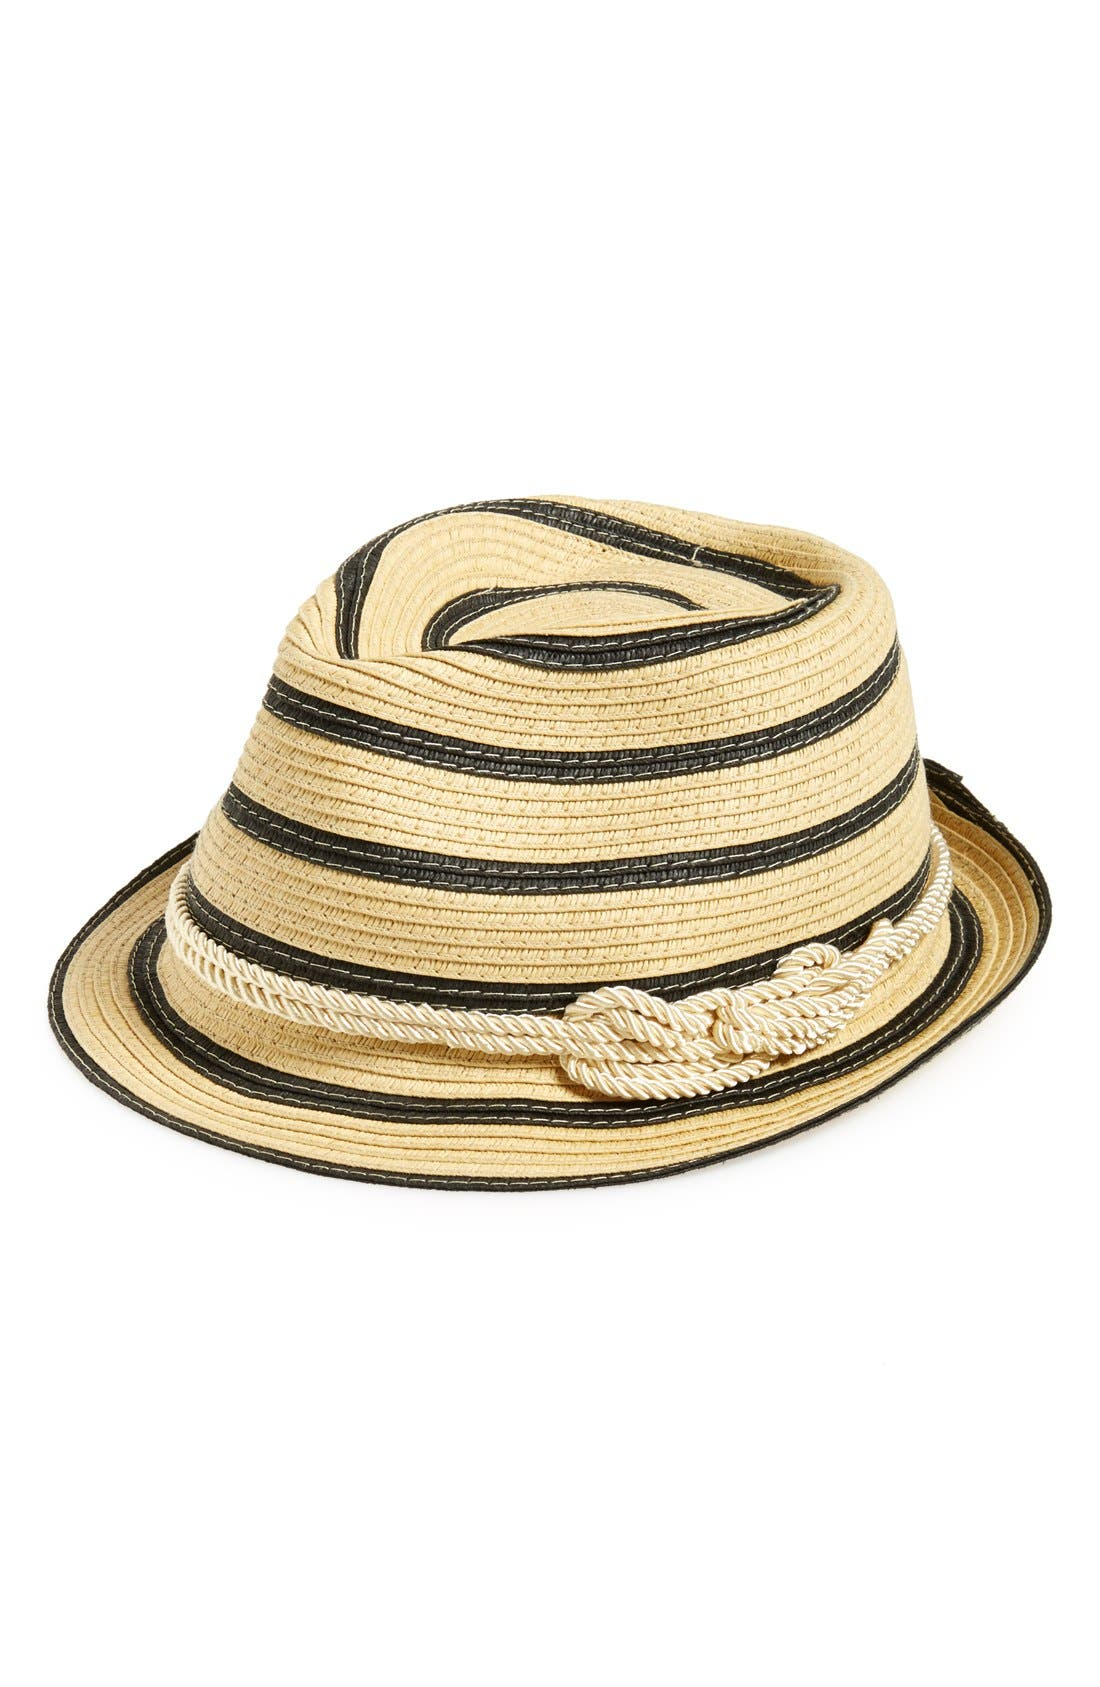 Alternate Image 1 Selected - Sole Society Woven Stripe Fedora